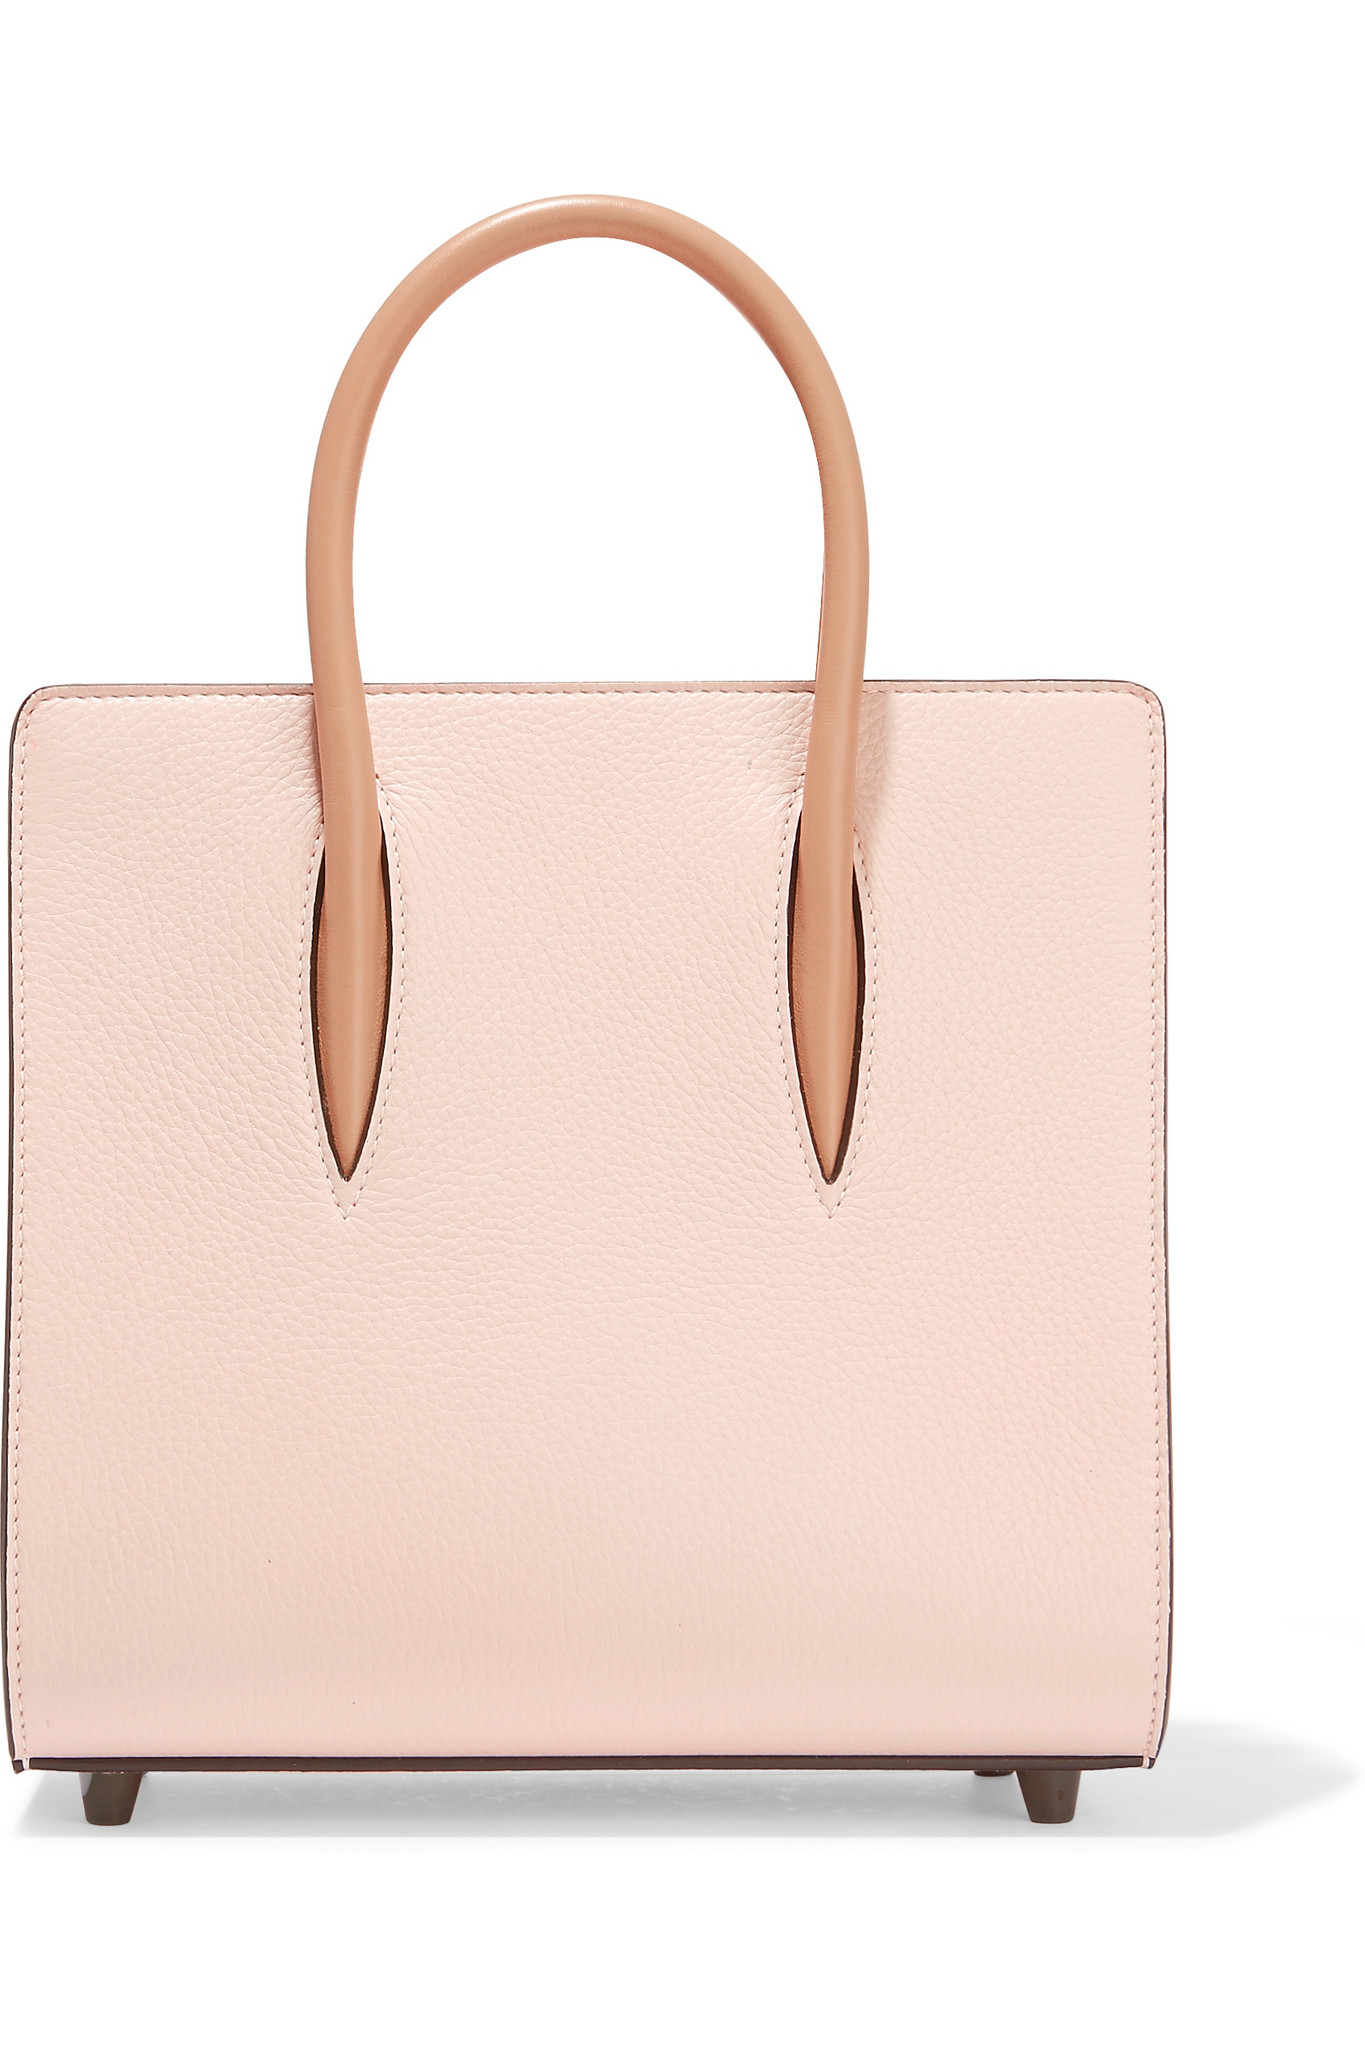 Christian Louboutin Pre-owned - Paloma leather tote o702z